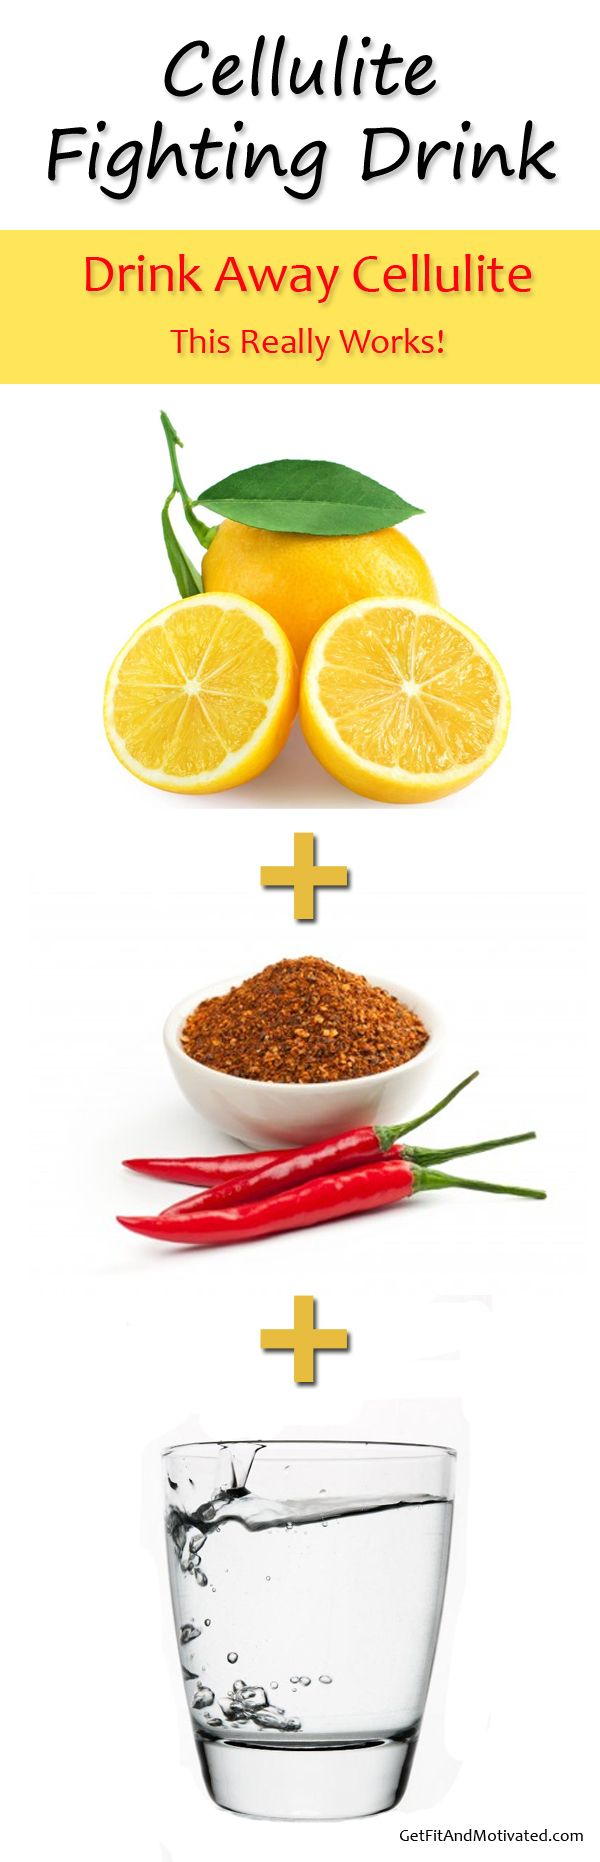 What is the detox drink with lemon and cayenne pepper?